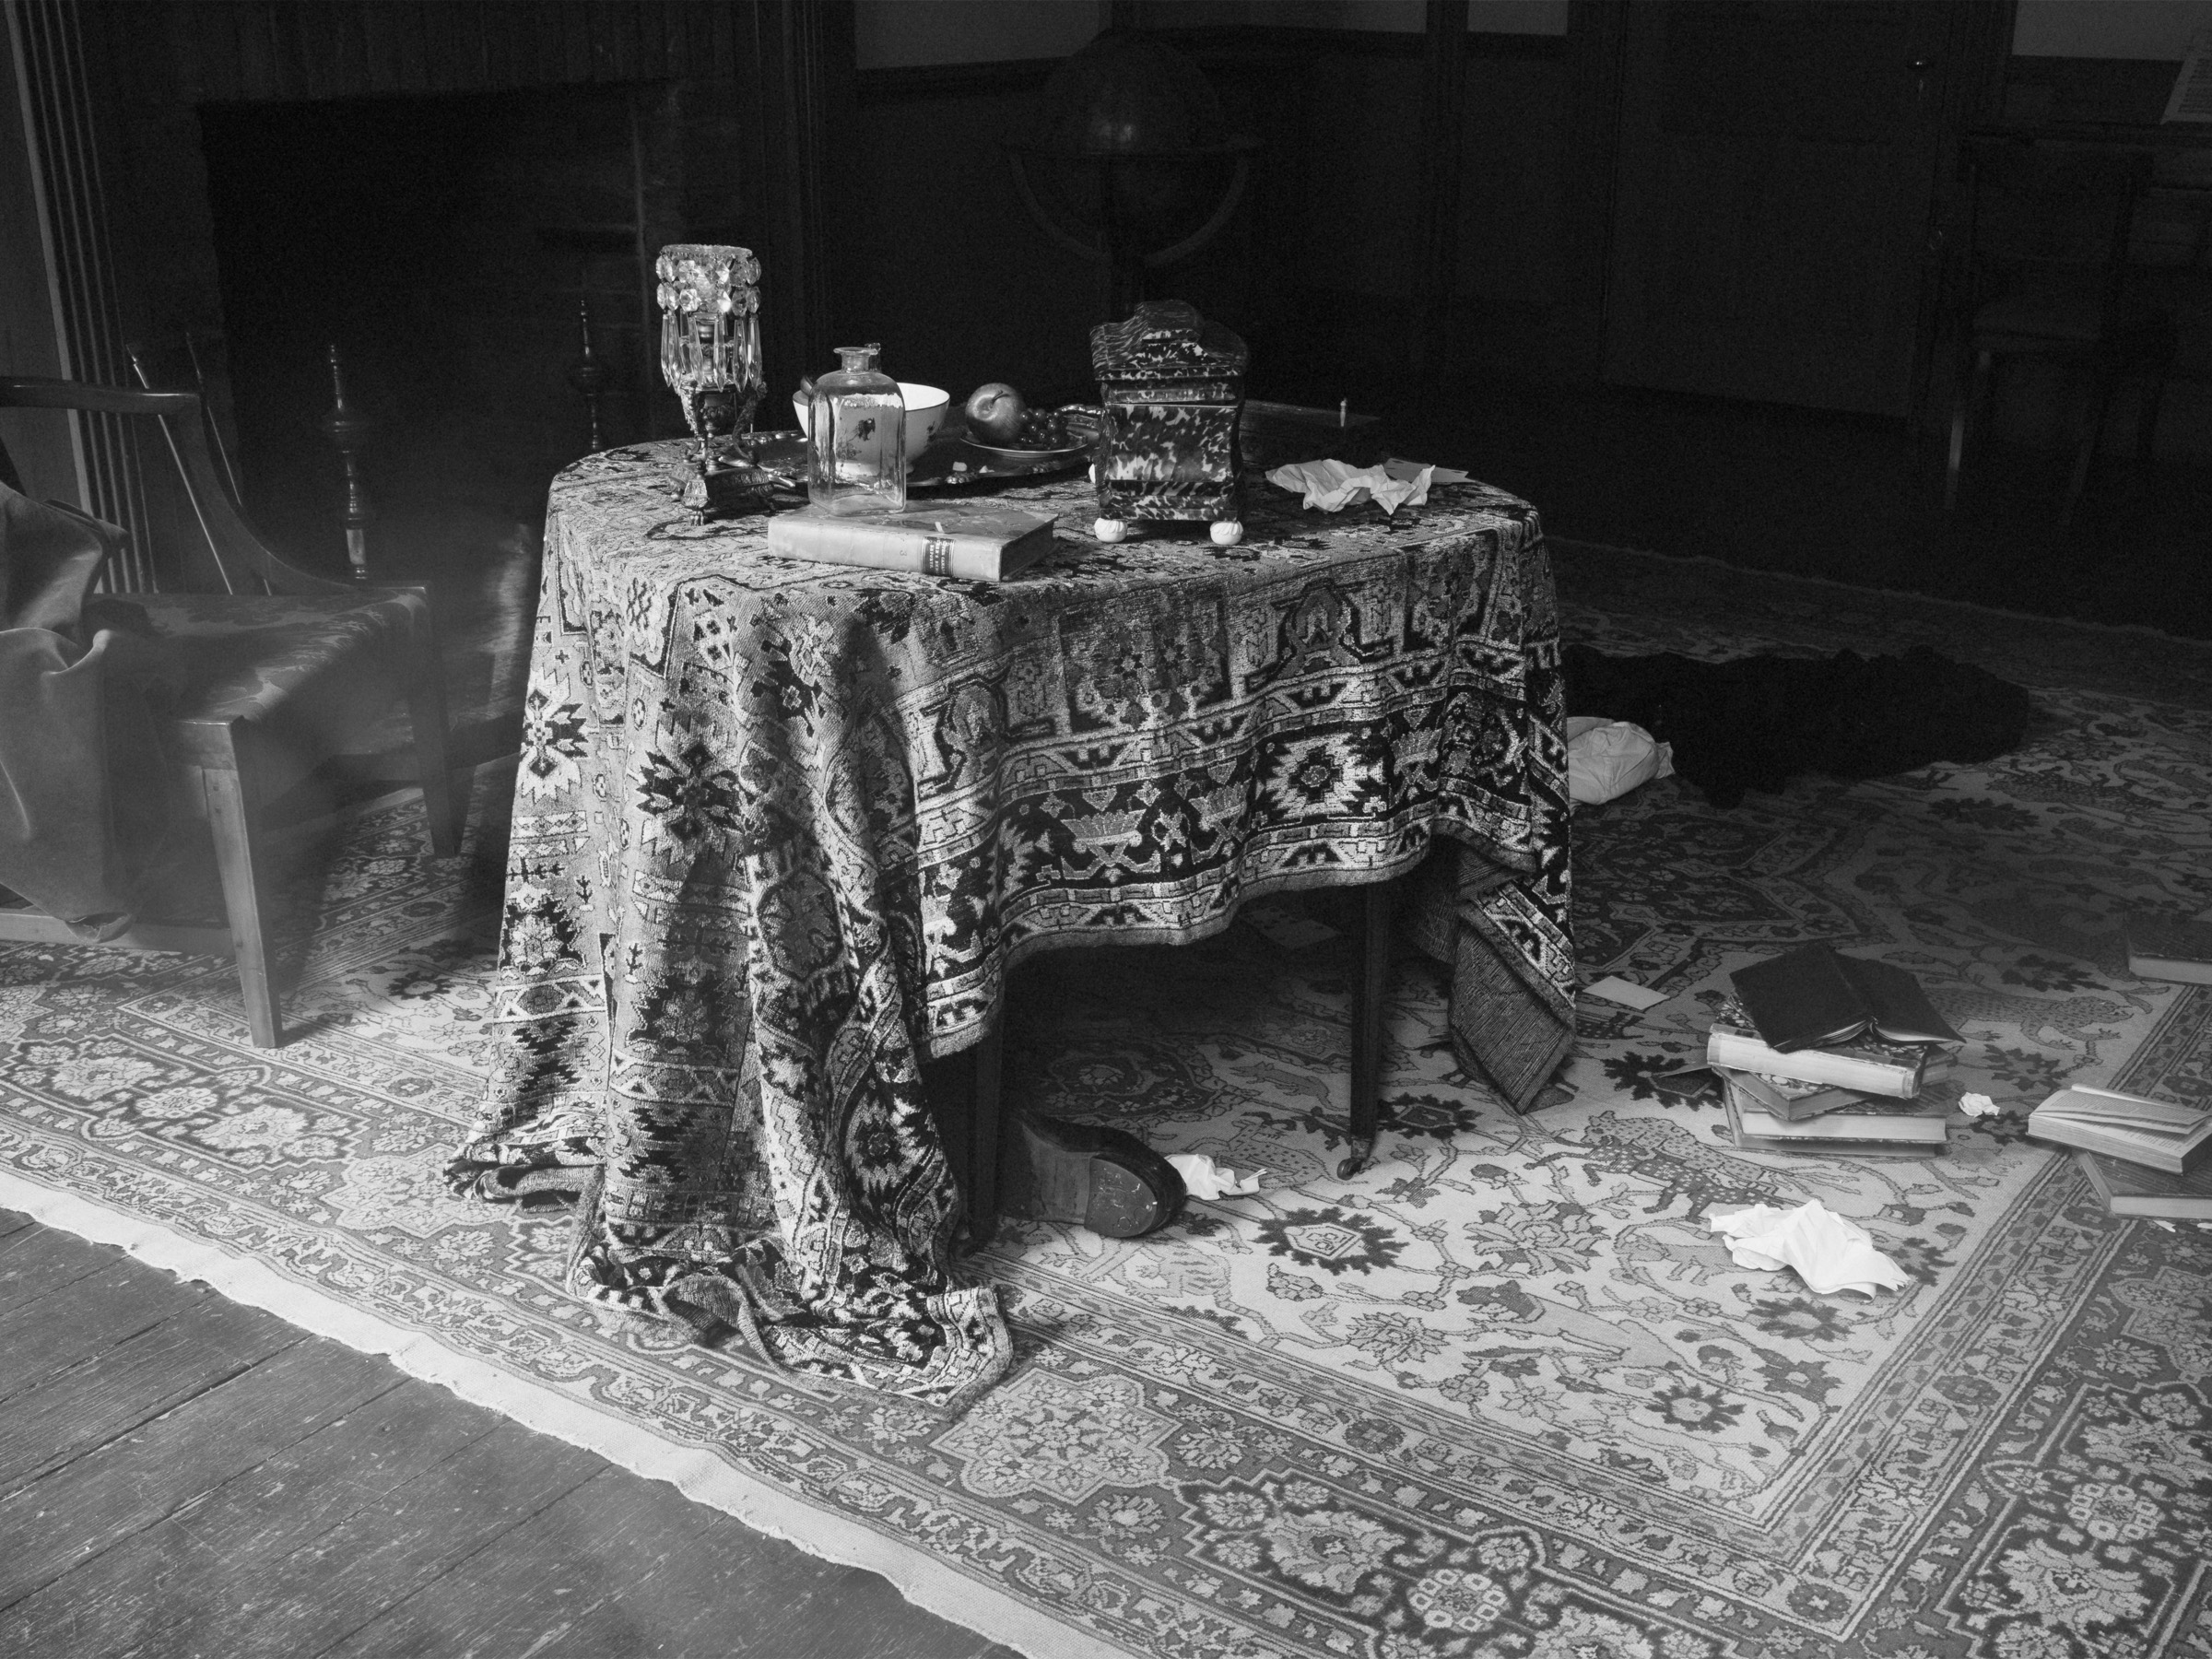 Tereza Zelenkova, Drawing Room, Campbell House, 2020. Courtesy of the artist and Ravestijn Gallery, Amsterdam